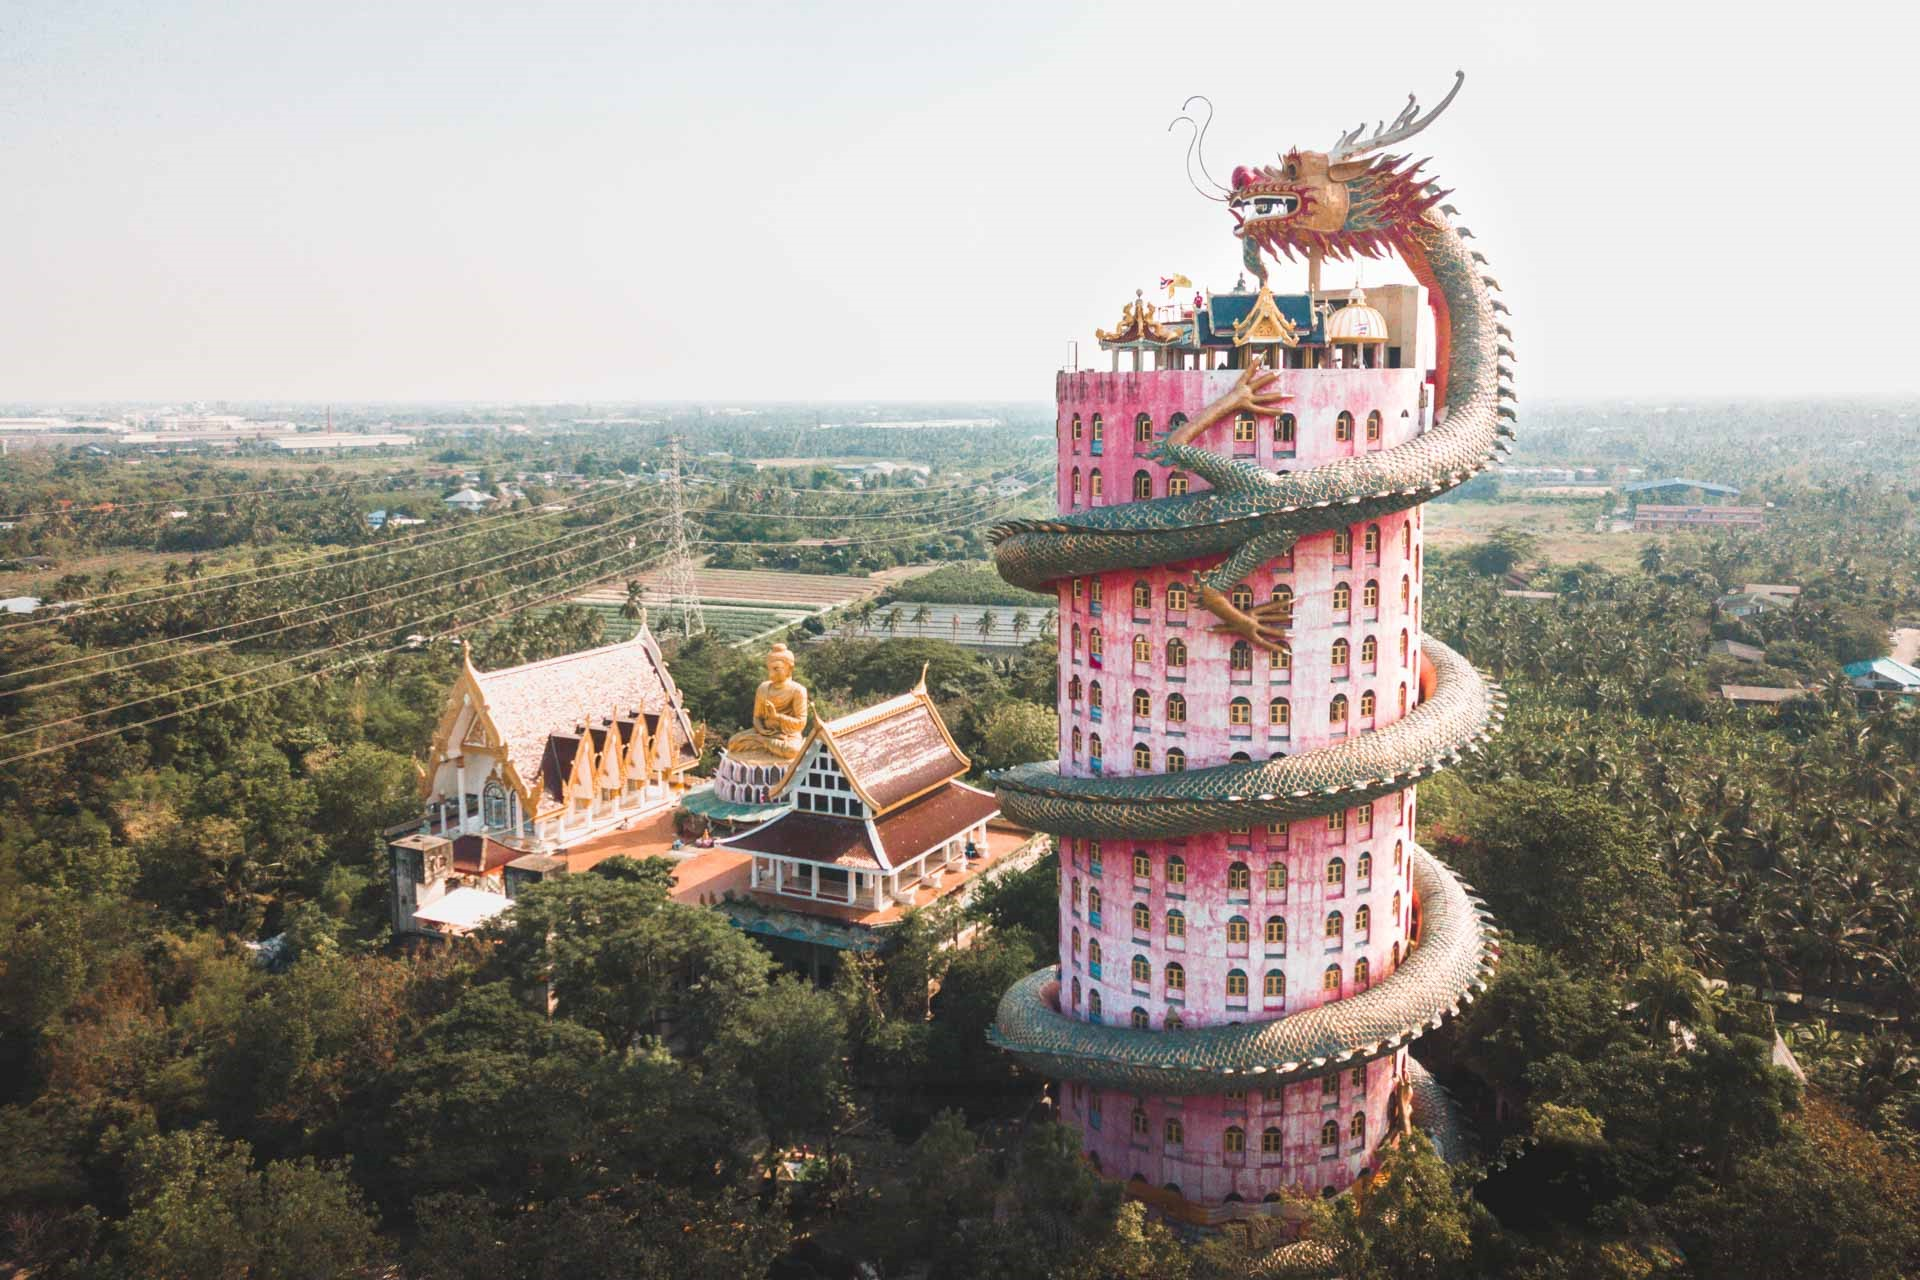 The Dragon Building in Wat Samphran | 7 Thailand's Most Exquisite Architectural Wonders | Brain Berries